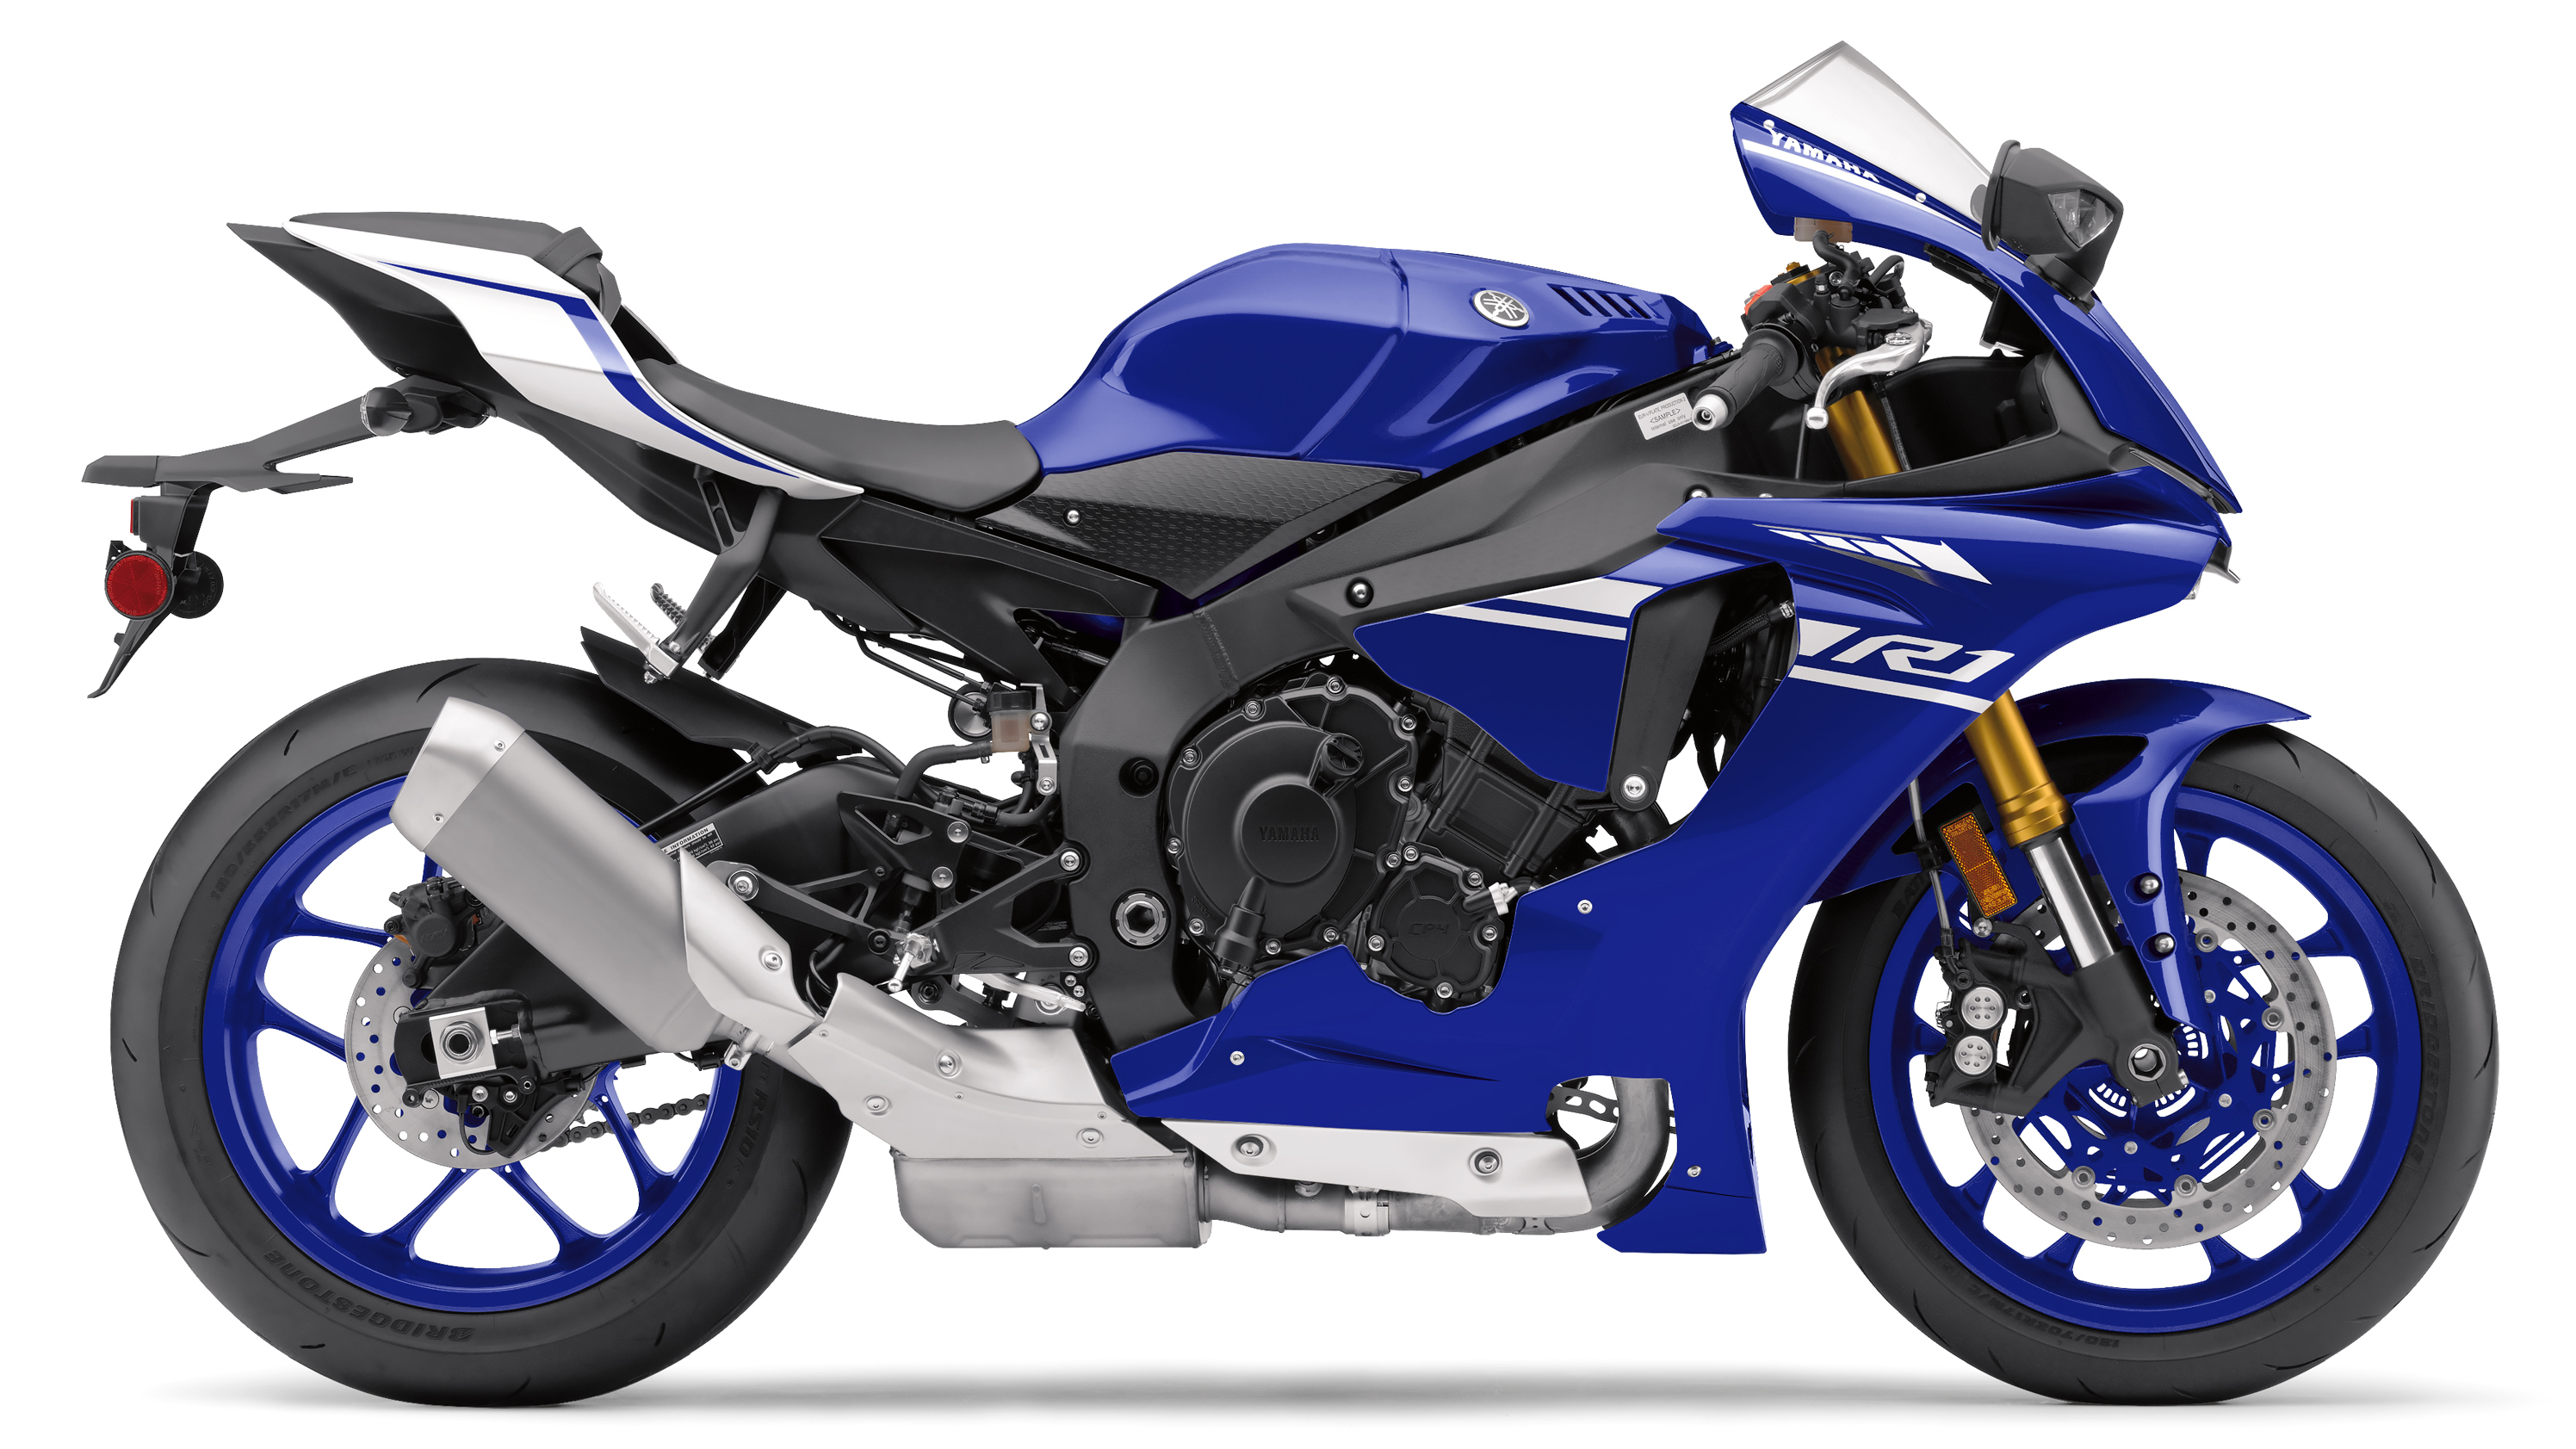 2016 2017 yamaha yzf r1 yzf r1s yzf r1m review gallery top speed. Black Bedroom Furniture Sets. Home Design Ideas